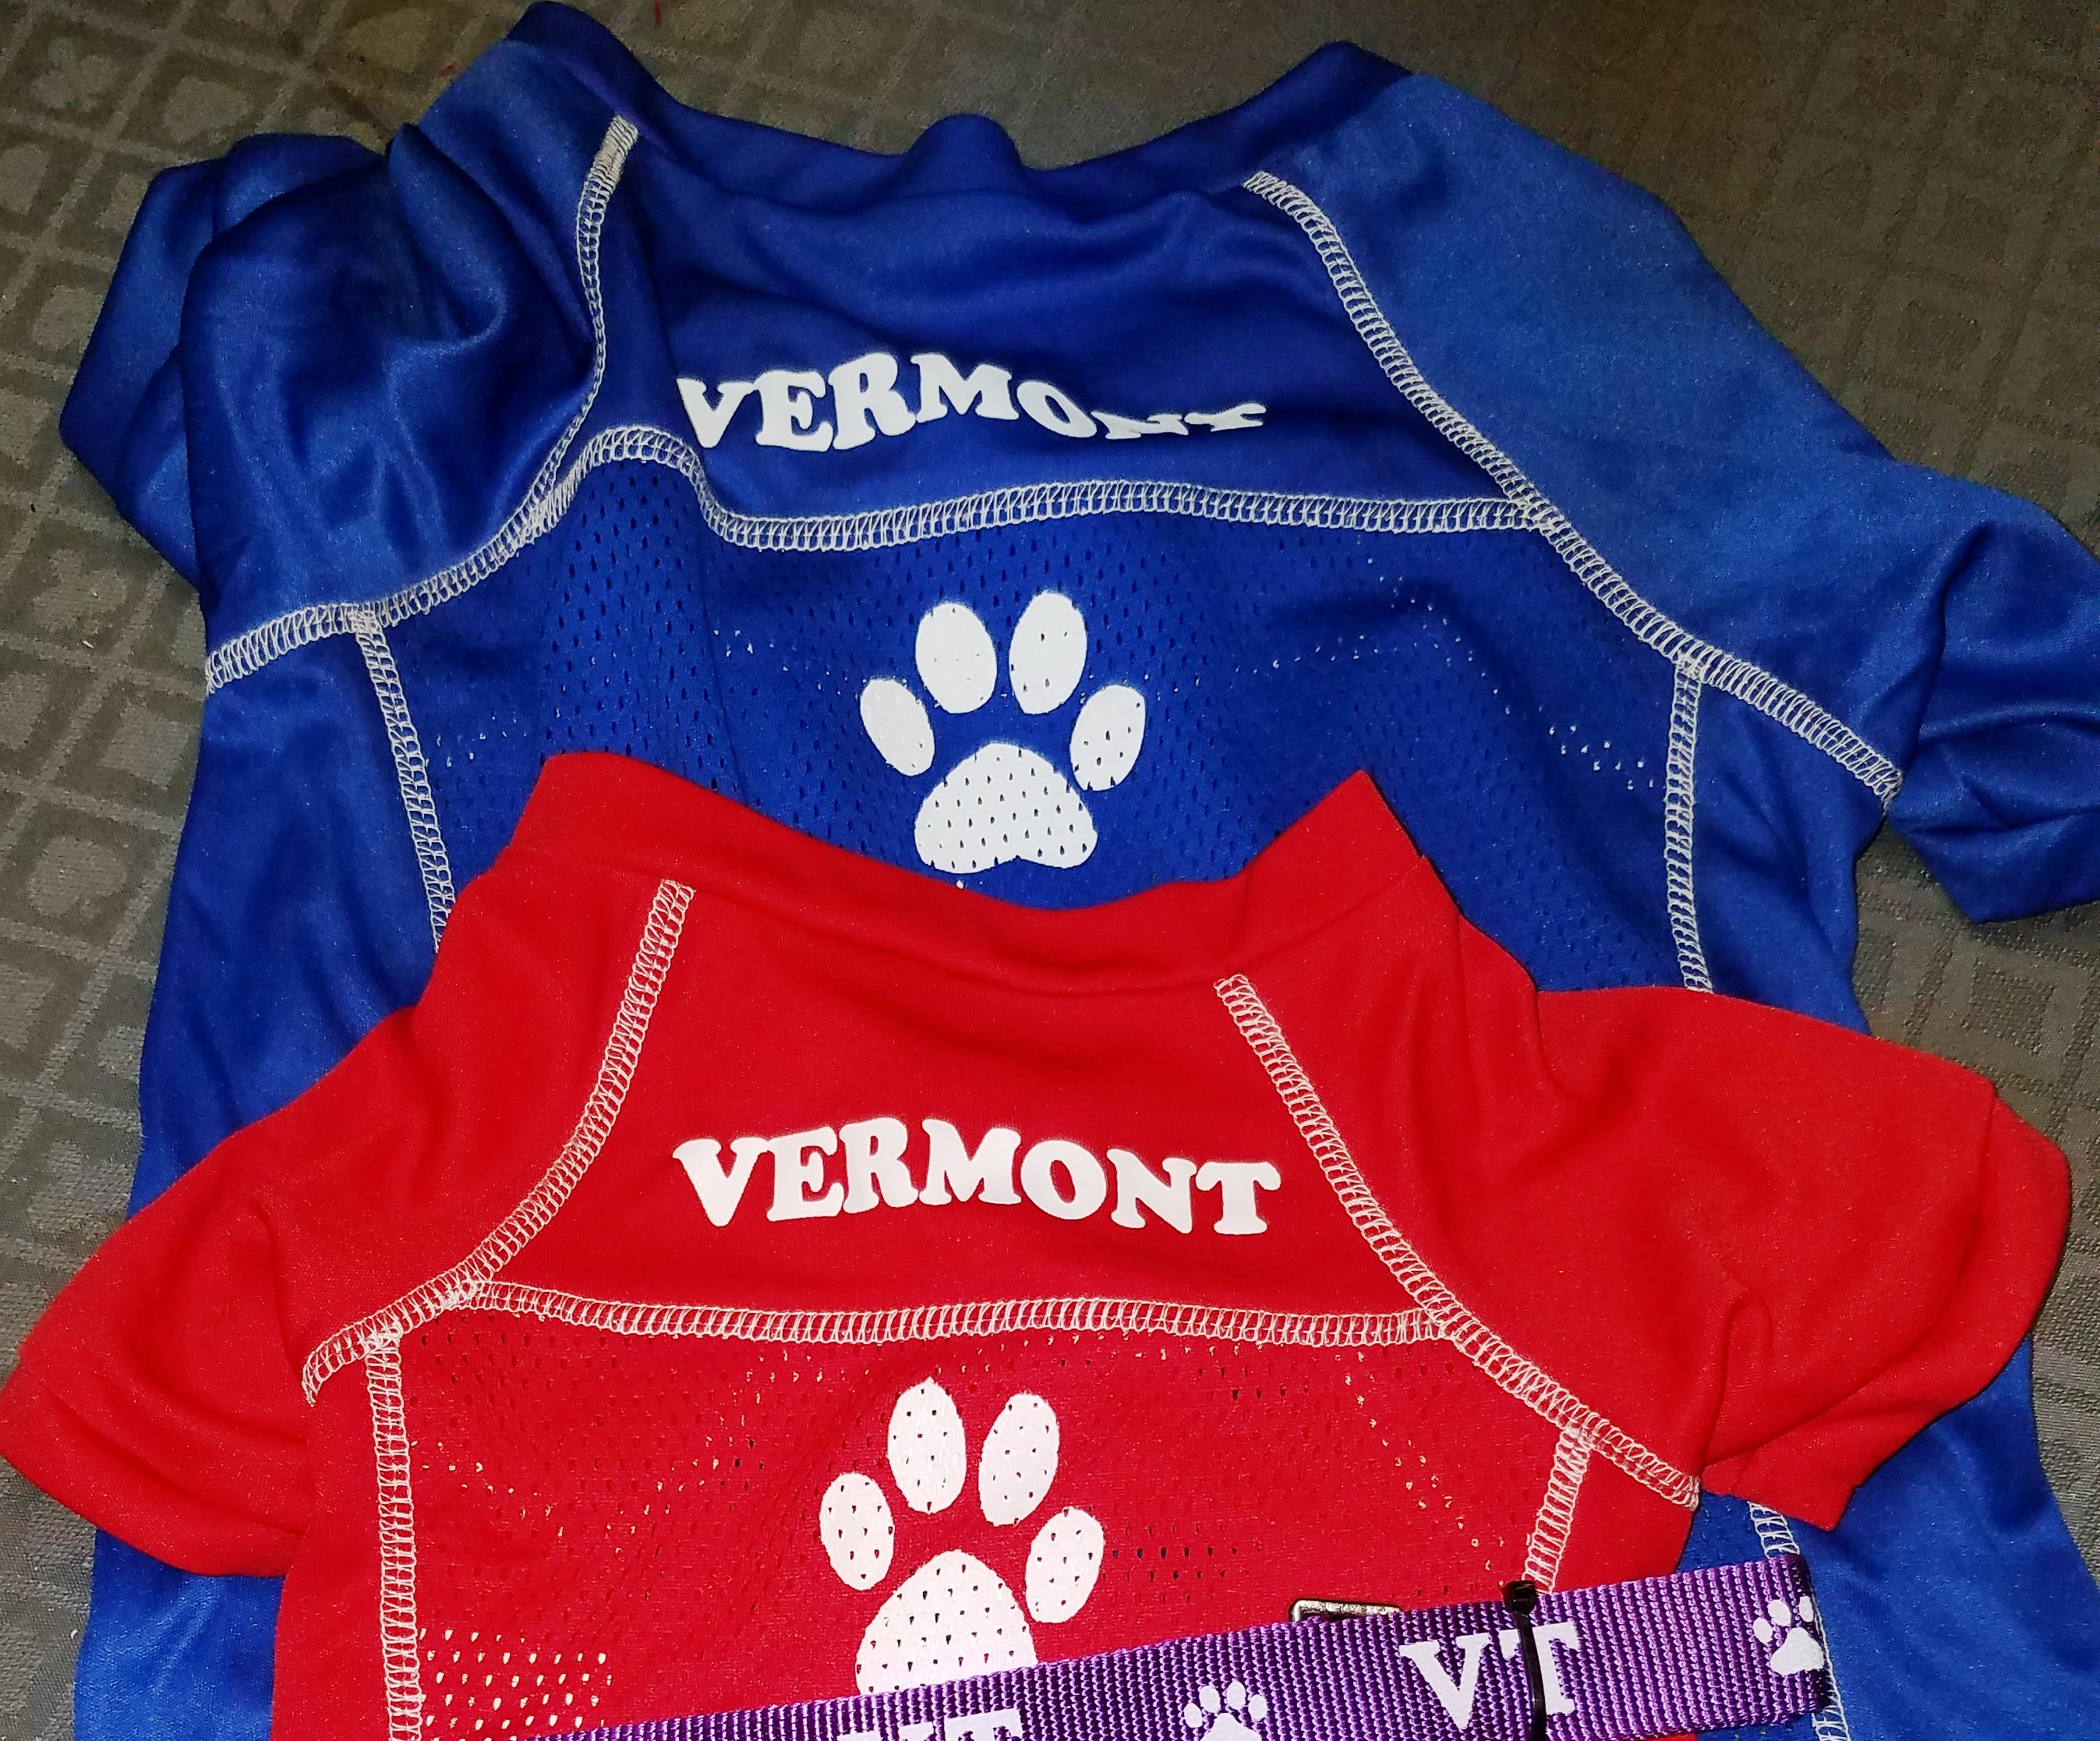 Copy of vt dog jersey